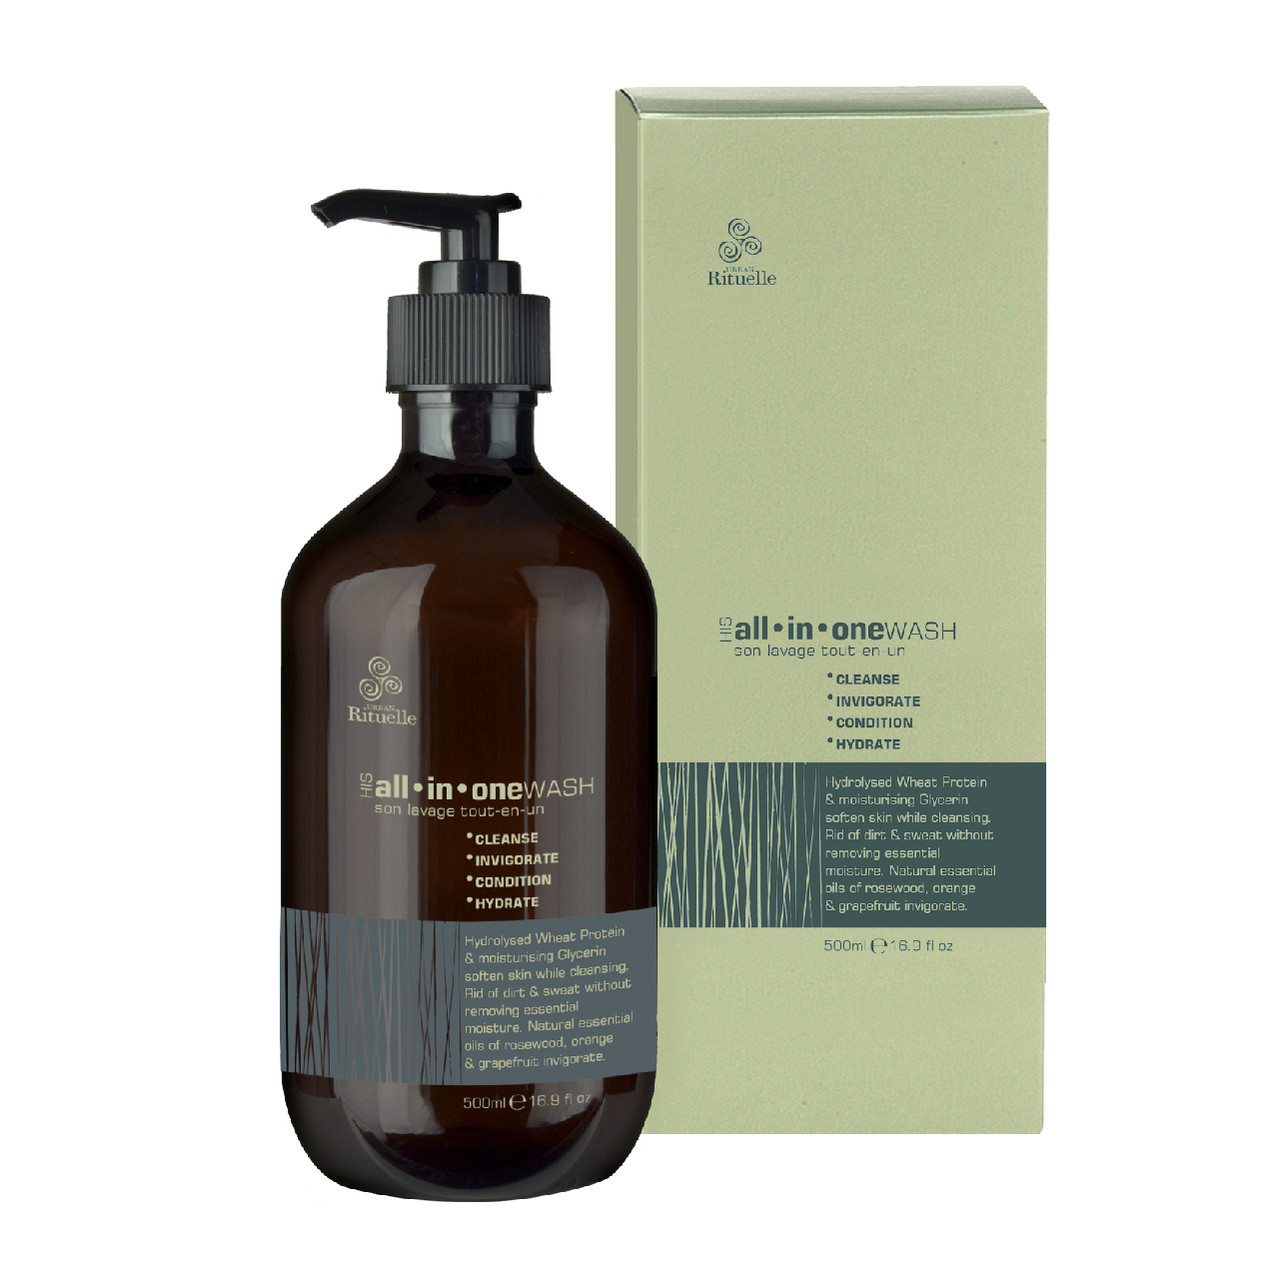 HIS - All-in-One Wash - Urban Rituelle